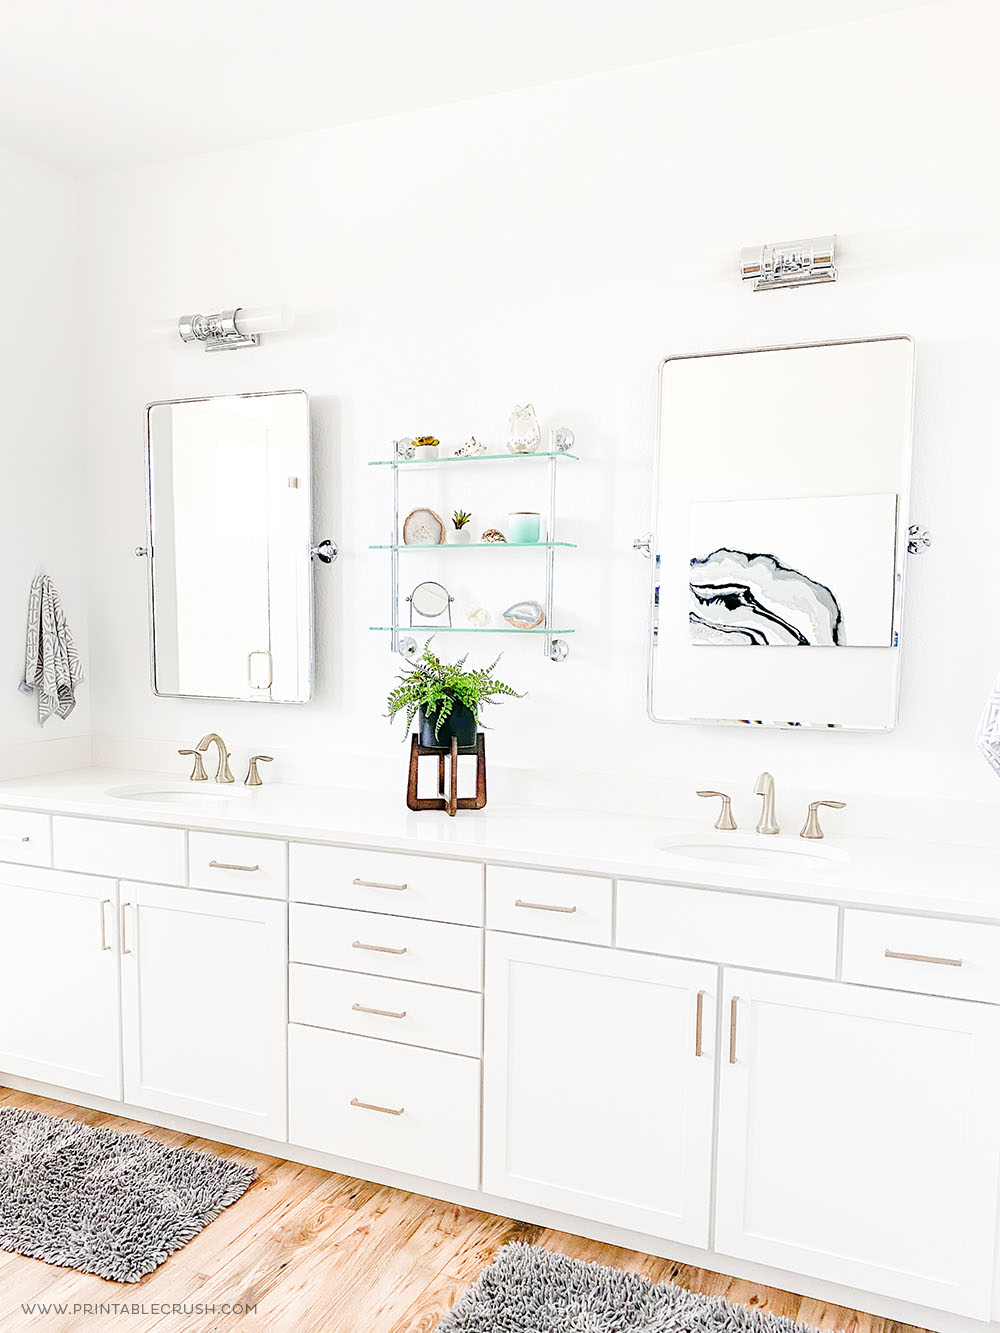 How to Keep Your Bathroom Clean - Printable Crush